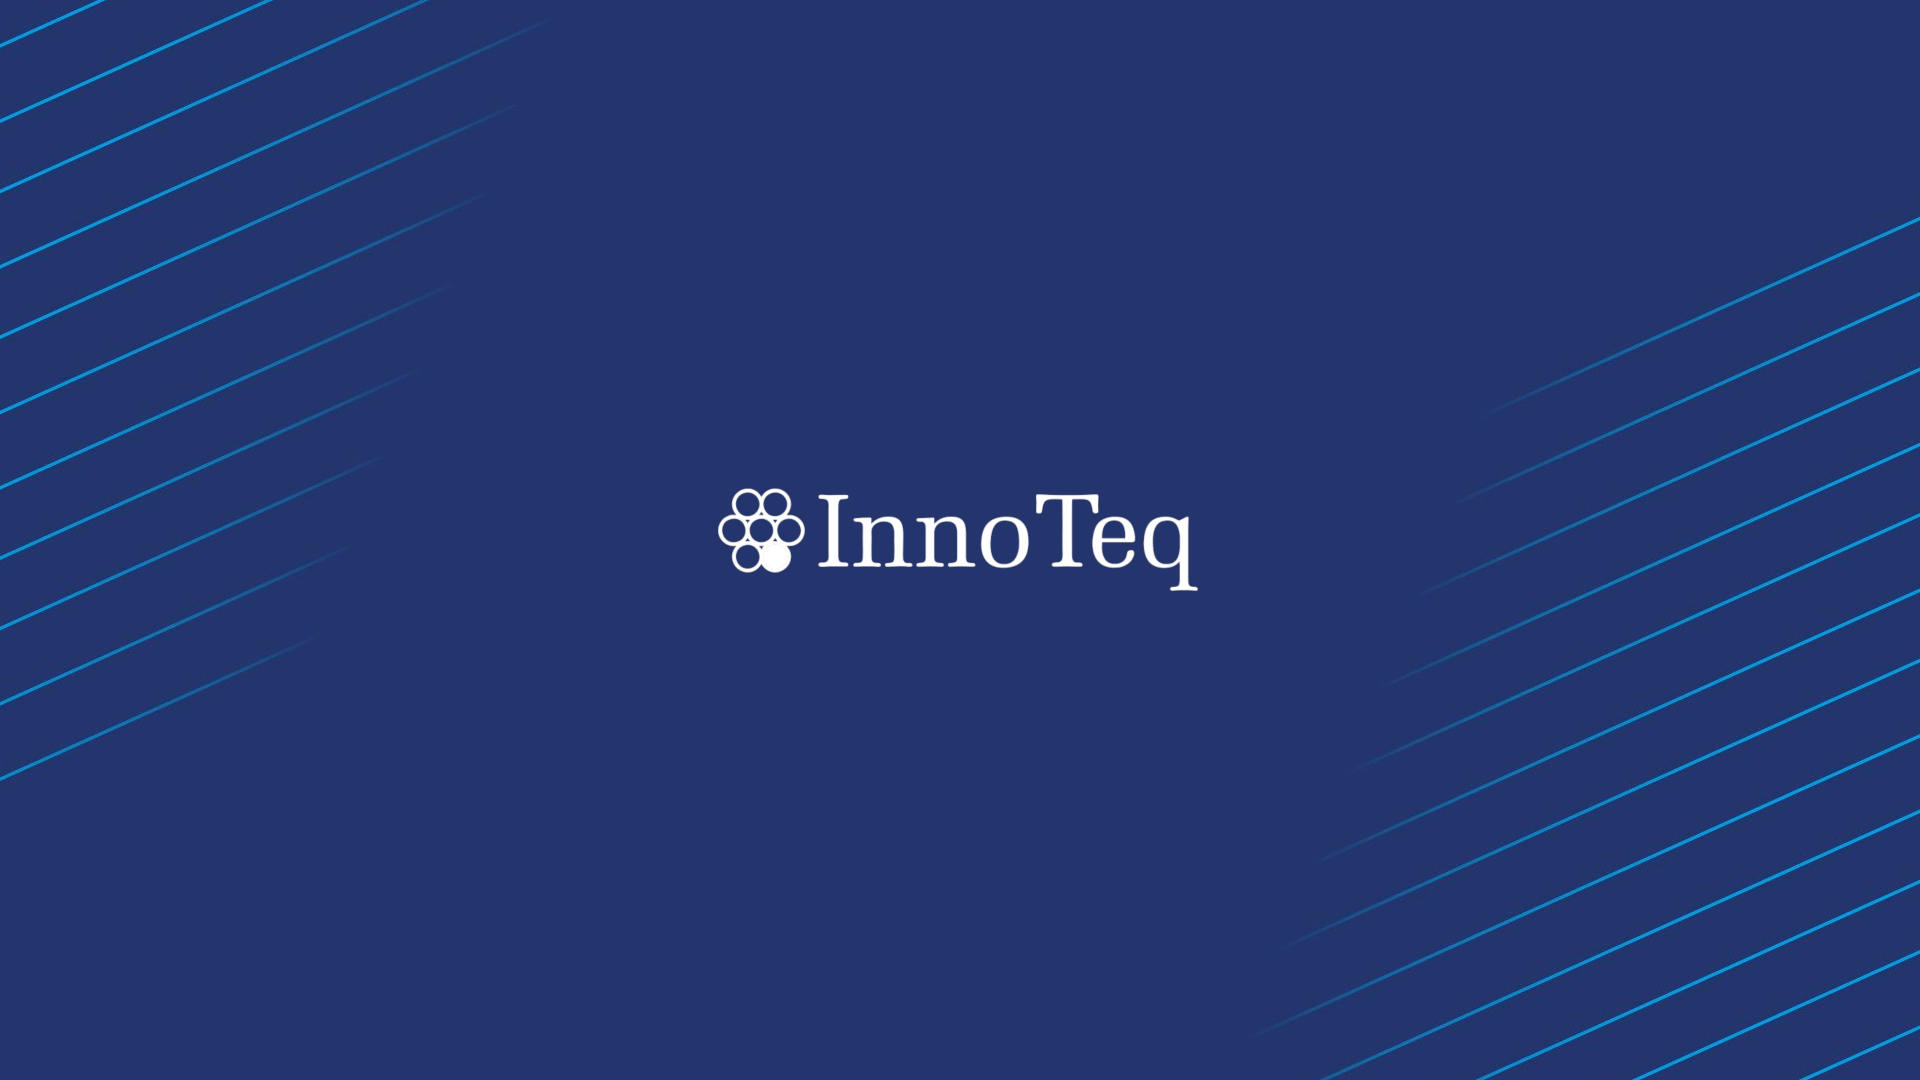 innoteq-logo-with-background